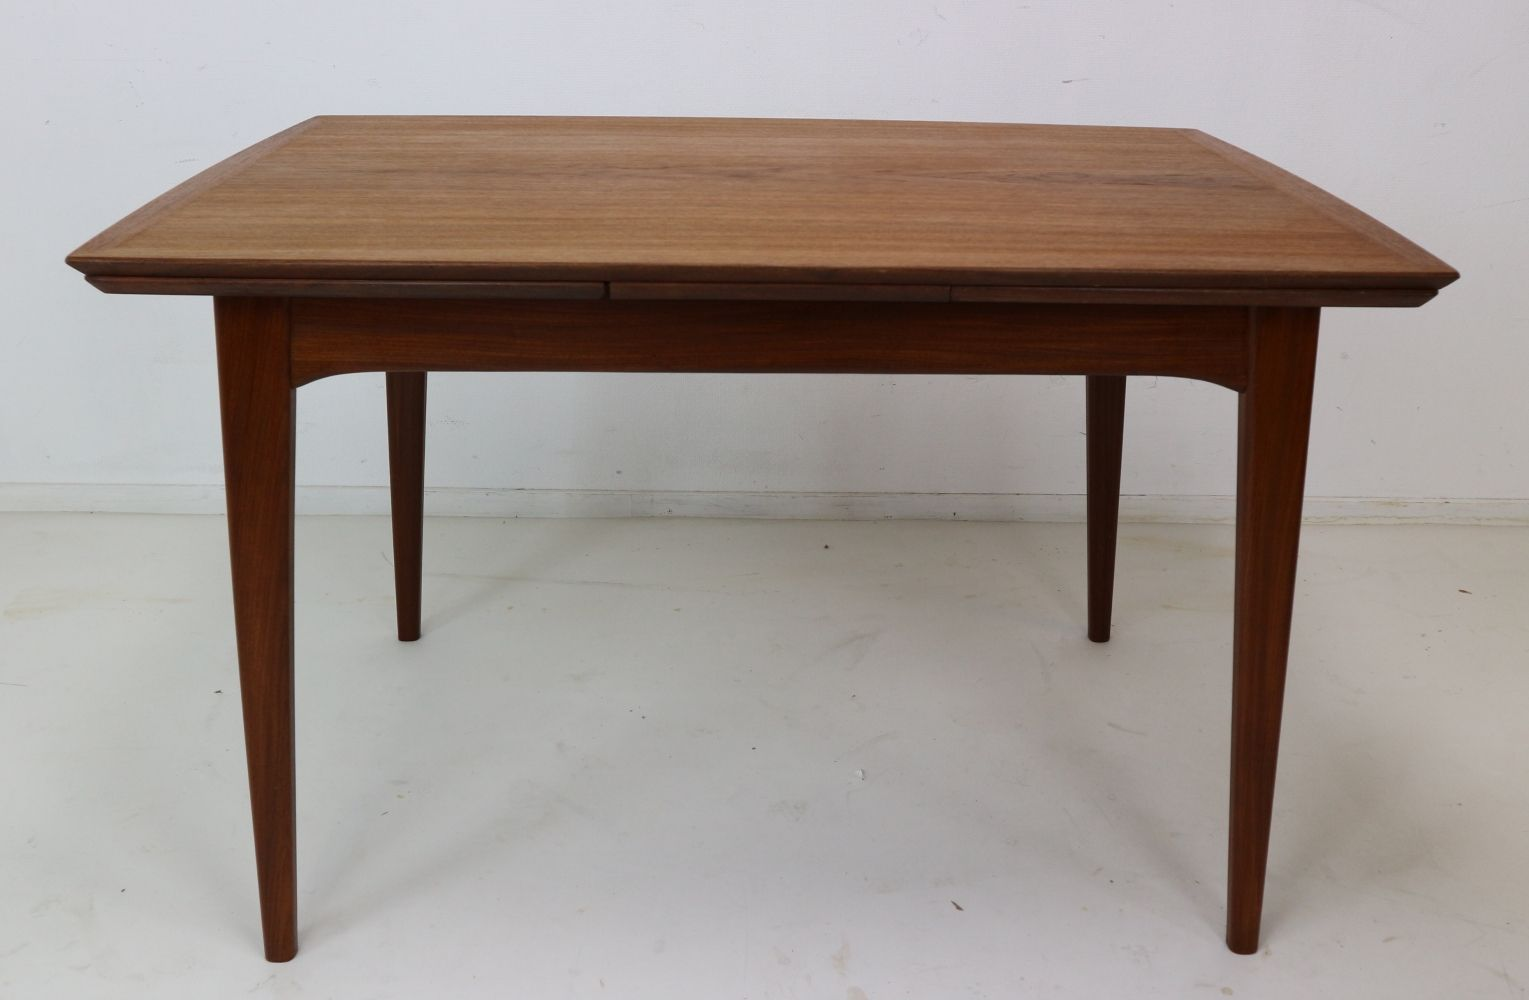 Dining Table By Louis Van Teeffelen 1960 Table Design Mid Century Design Table